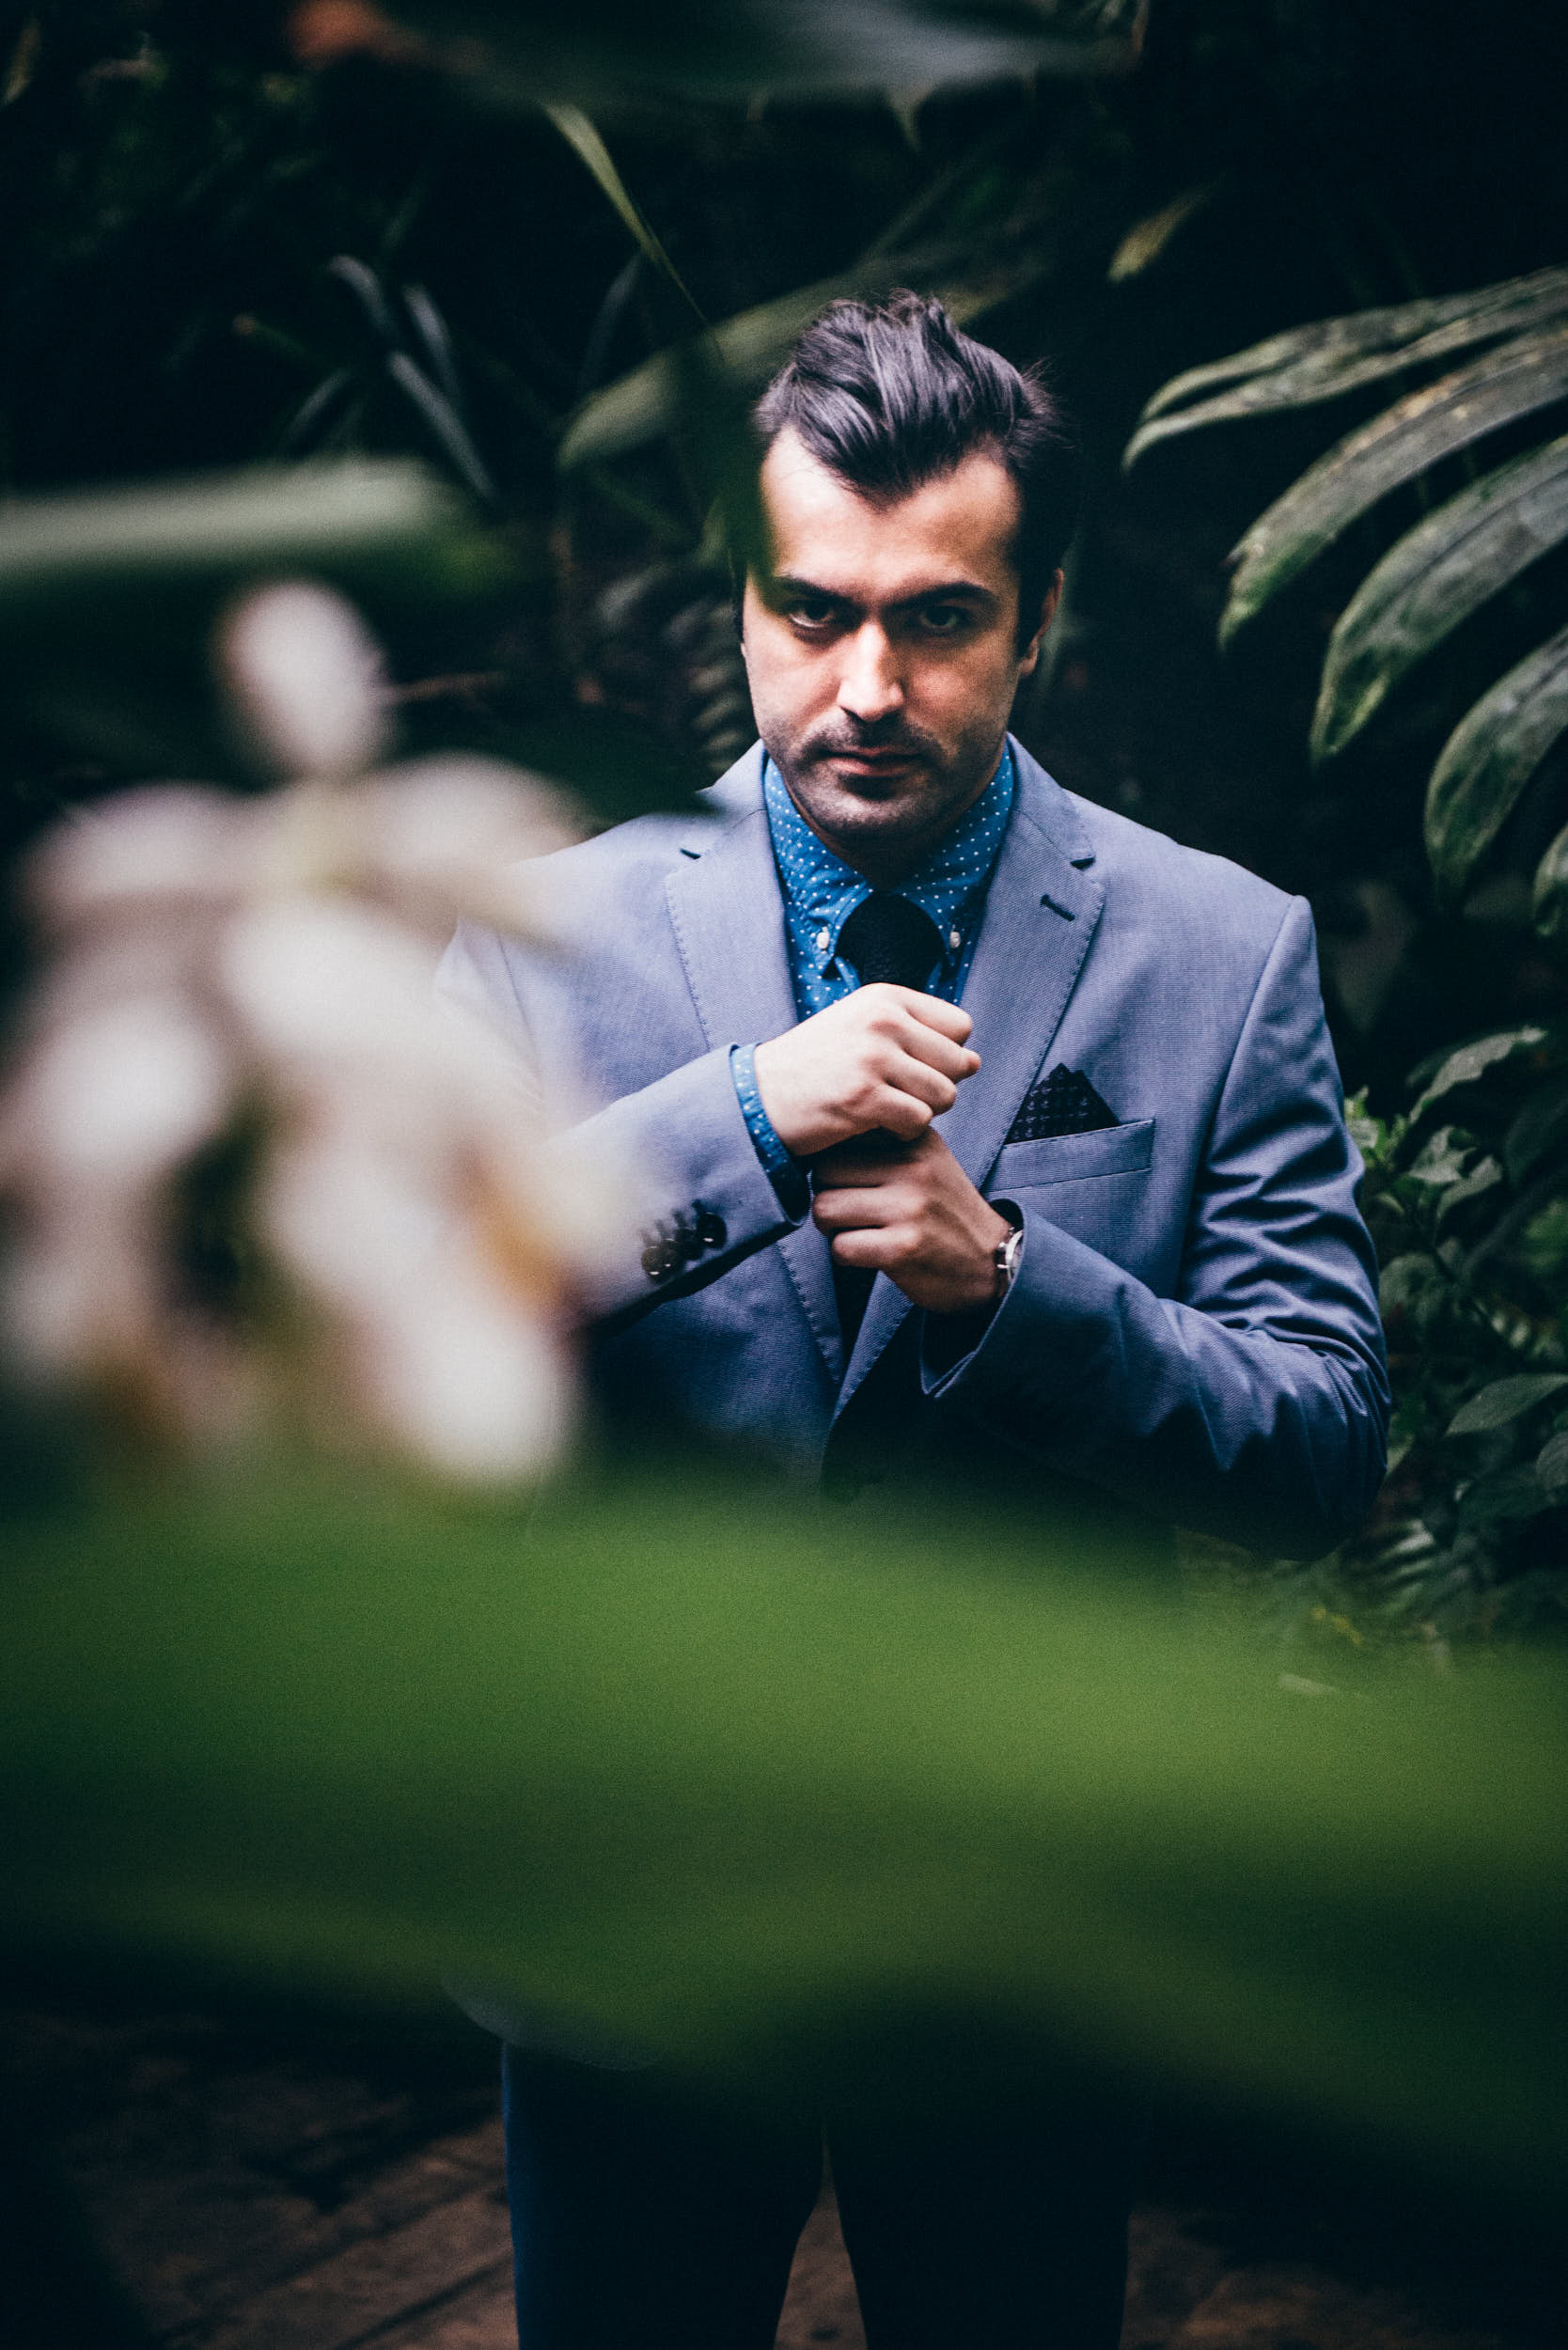 Man adjusting his suit surrounded with green plants.